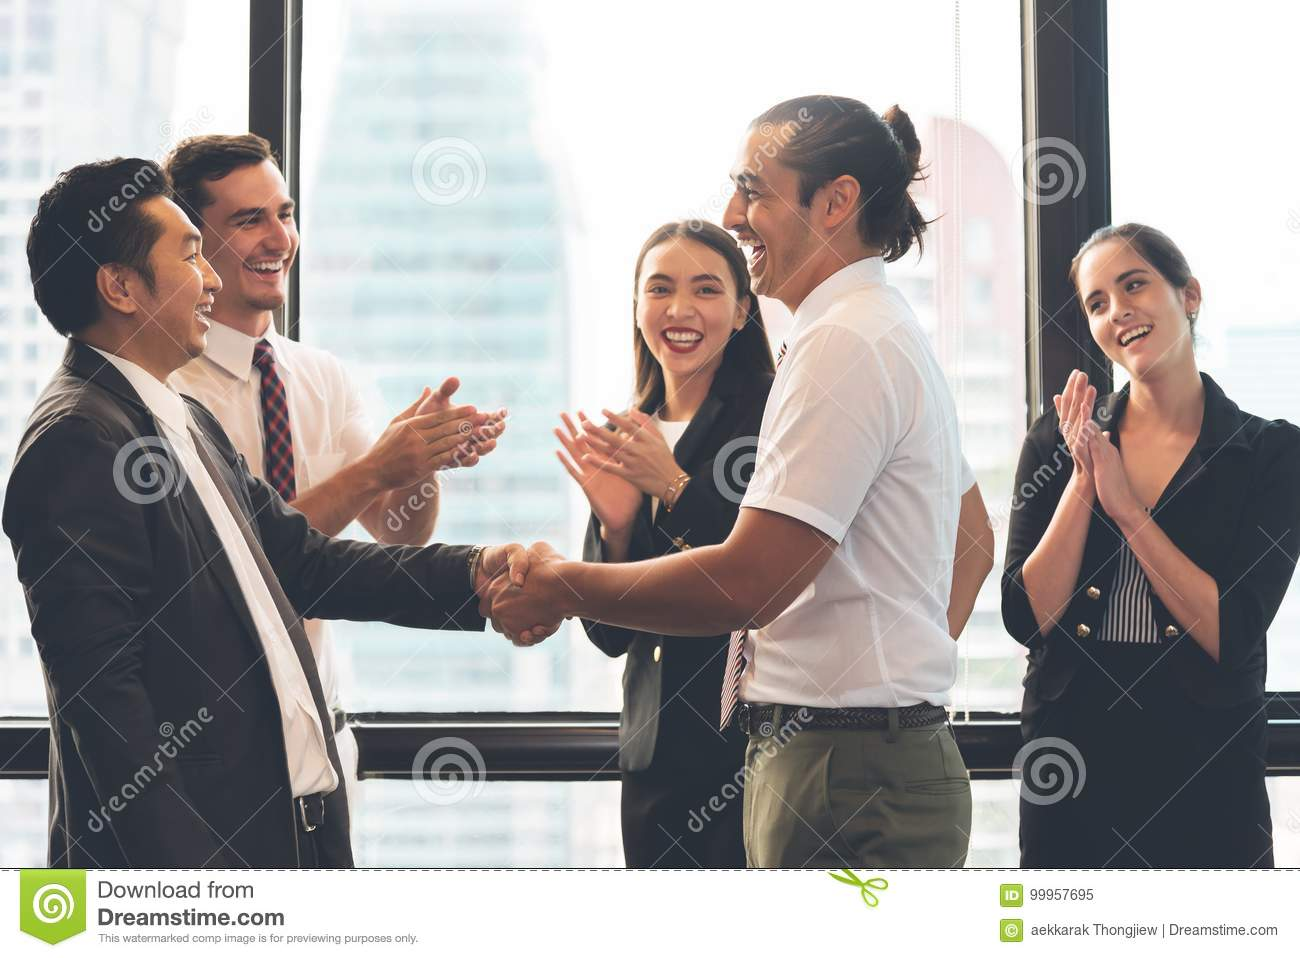 Business People Handshaking after greeting deal